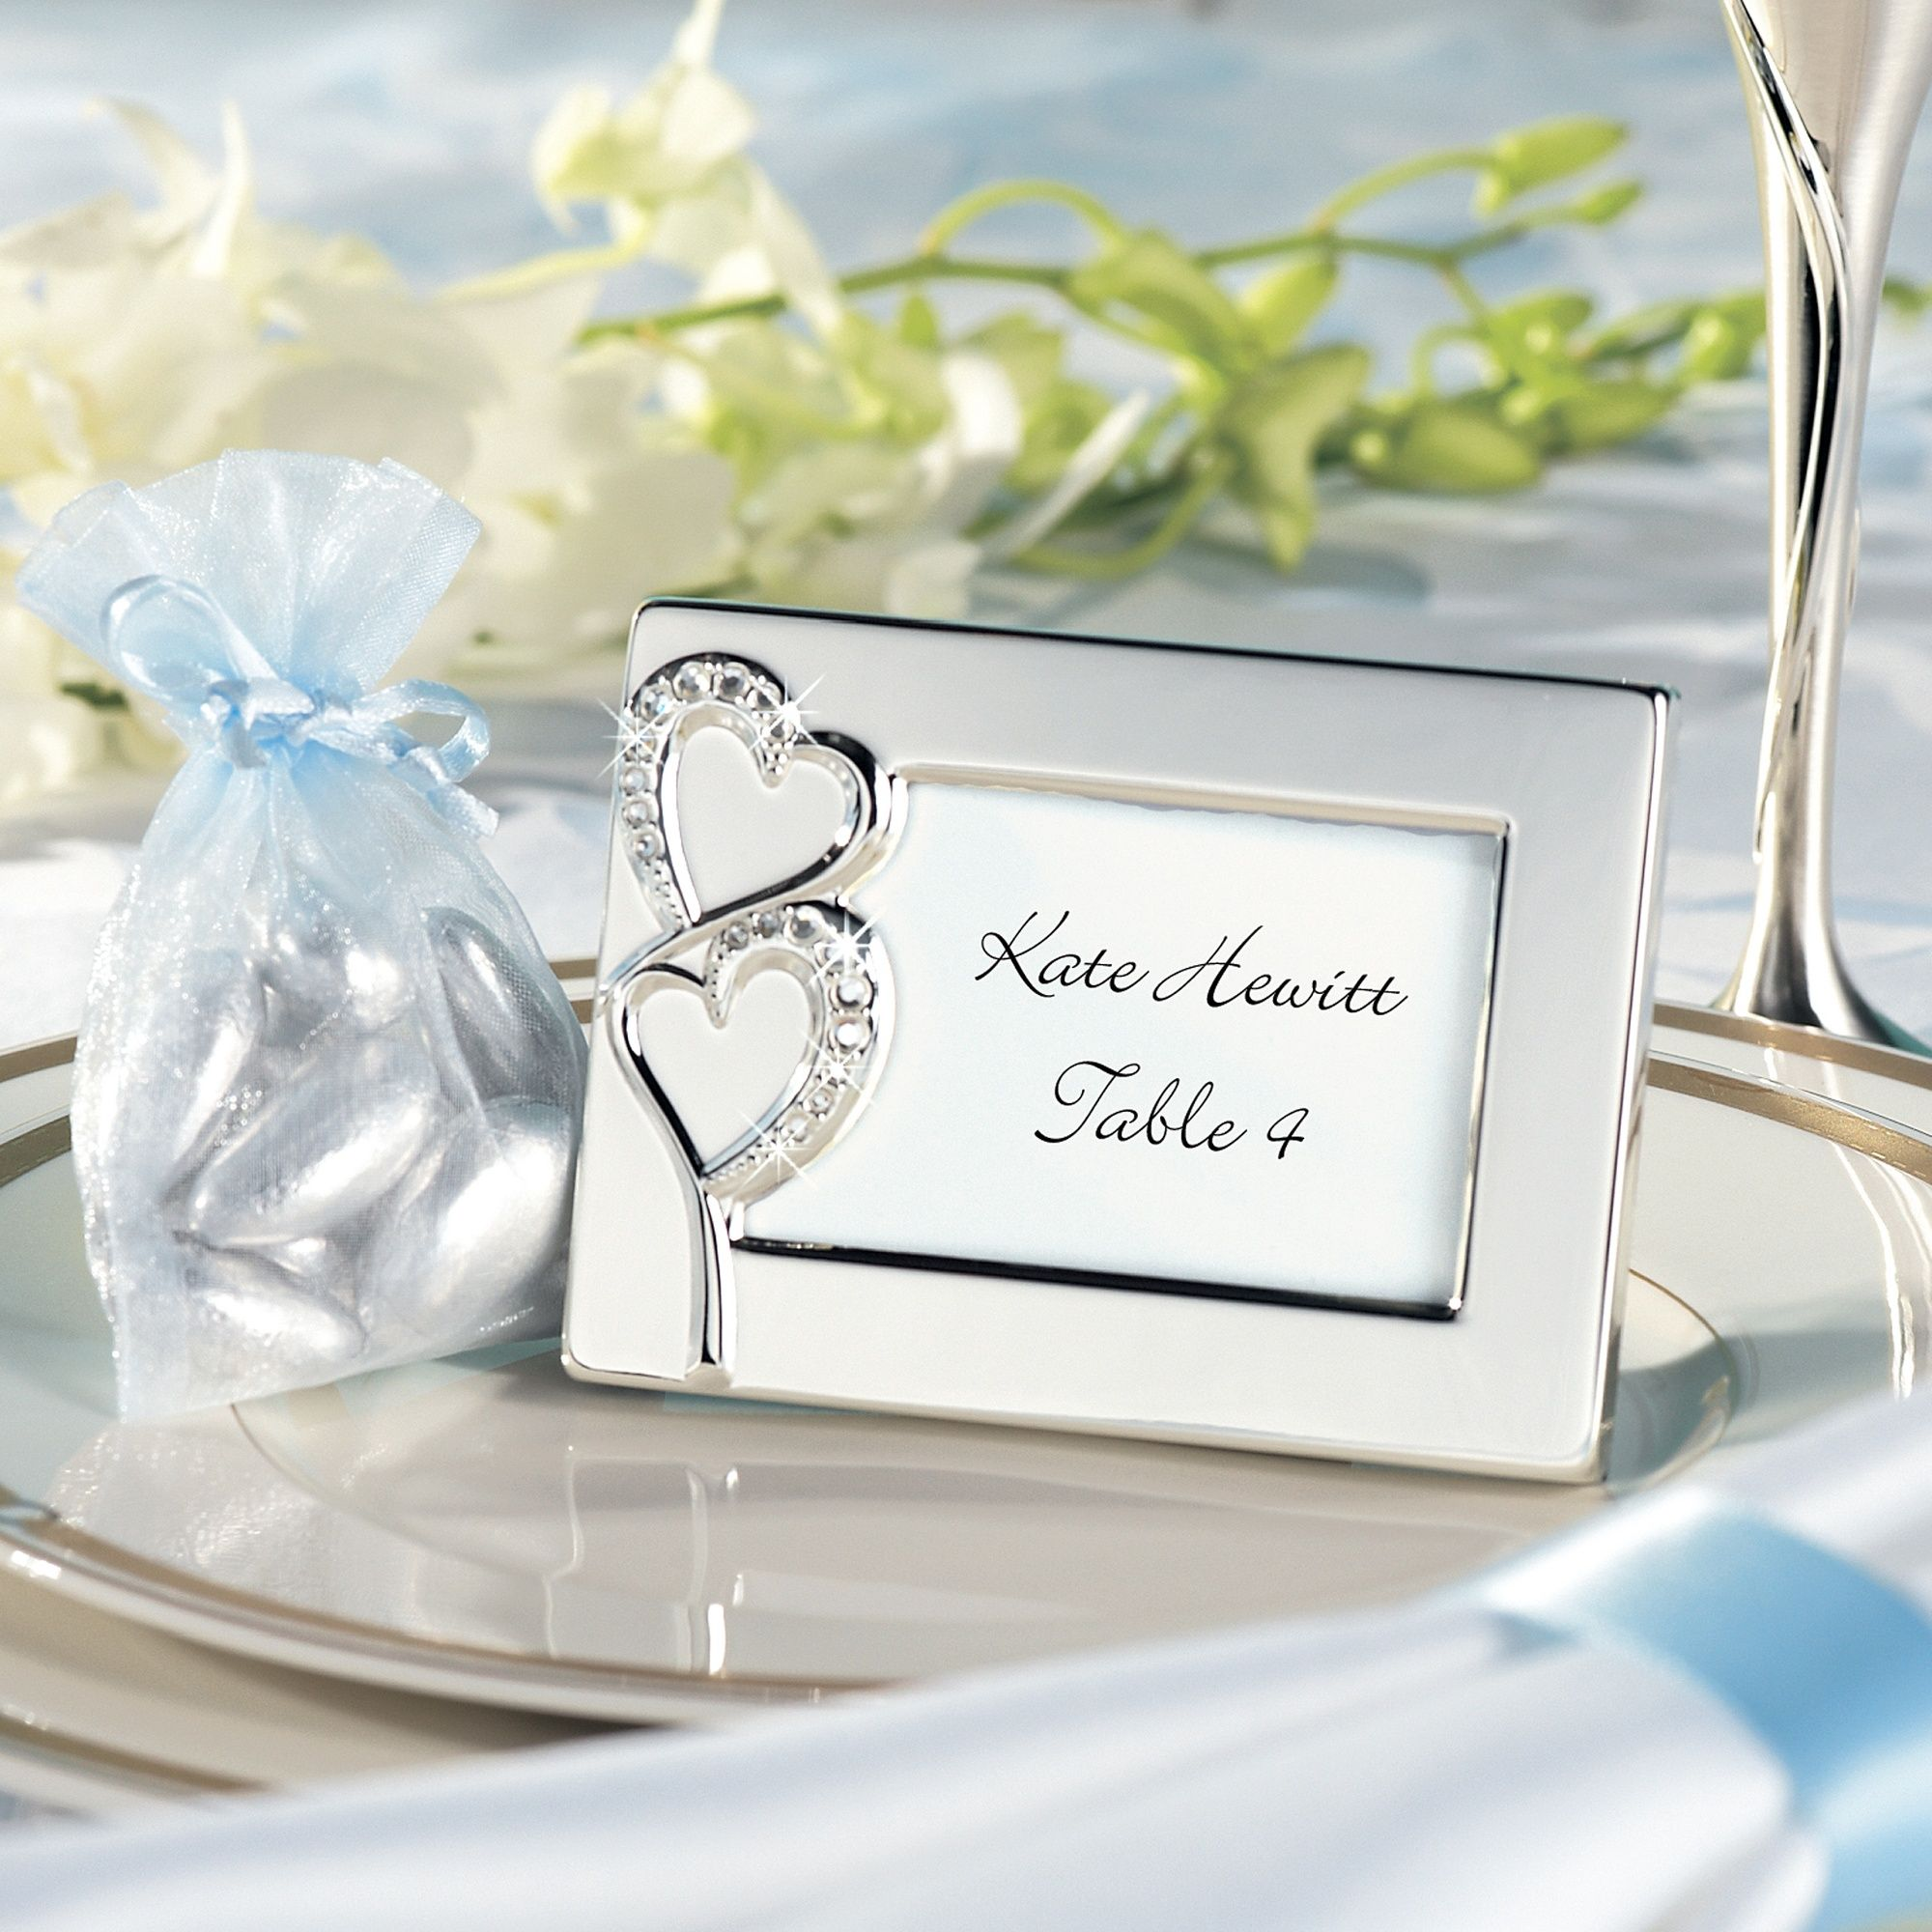 Twin Hearts Frame Wedding Favor and Place Card Holder ...